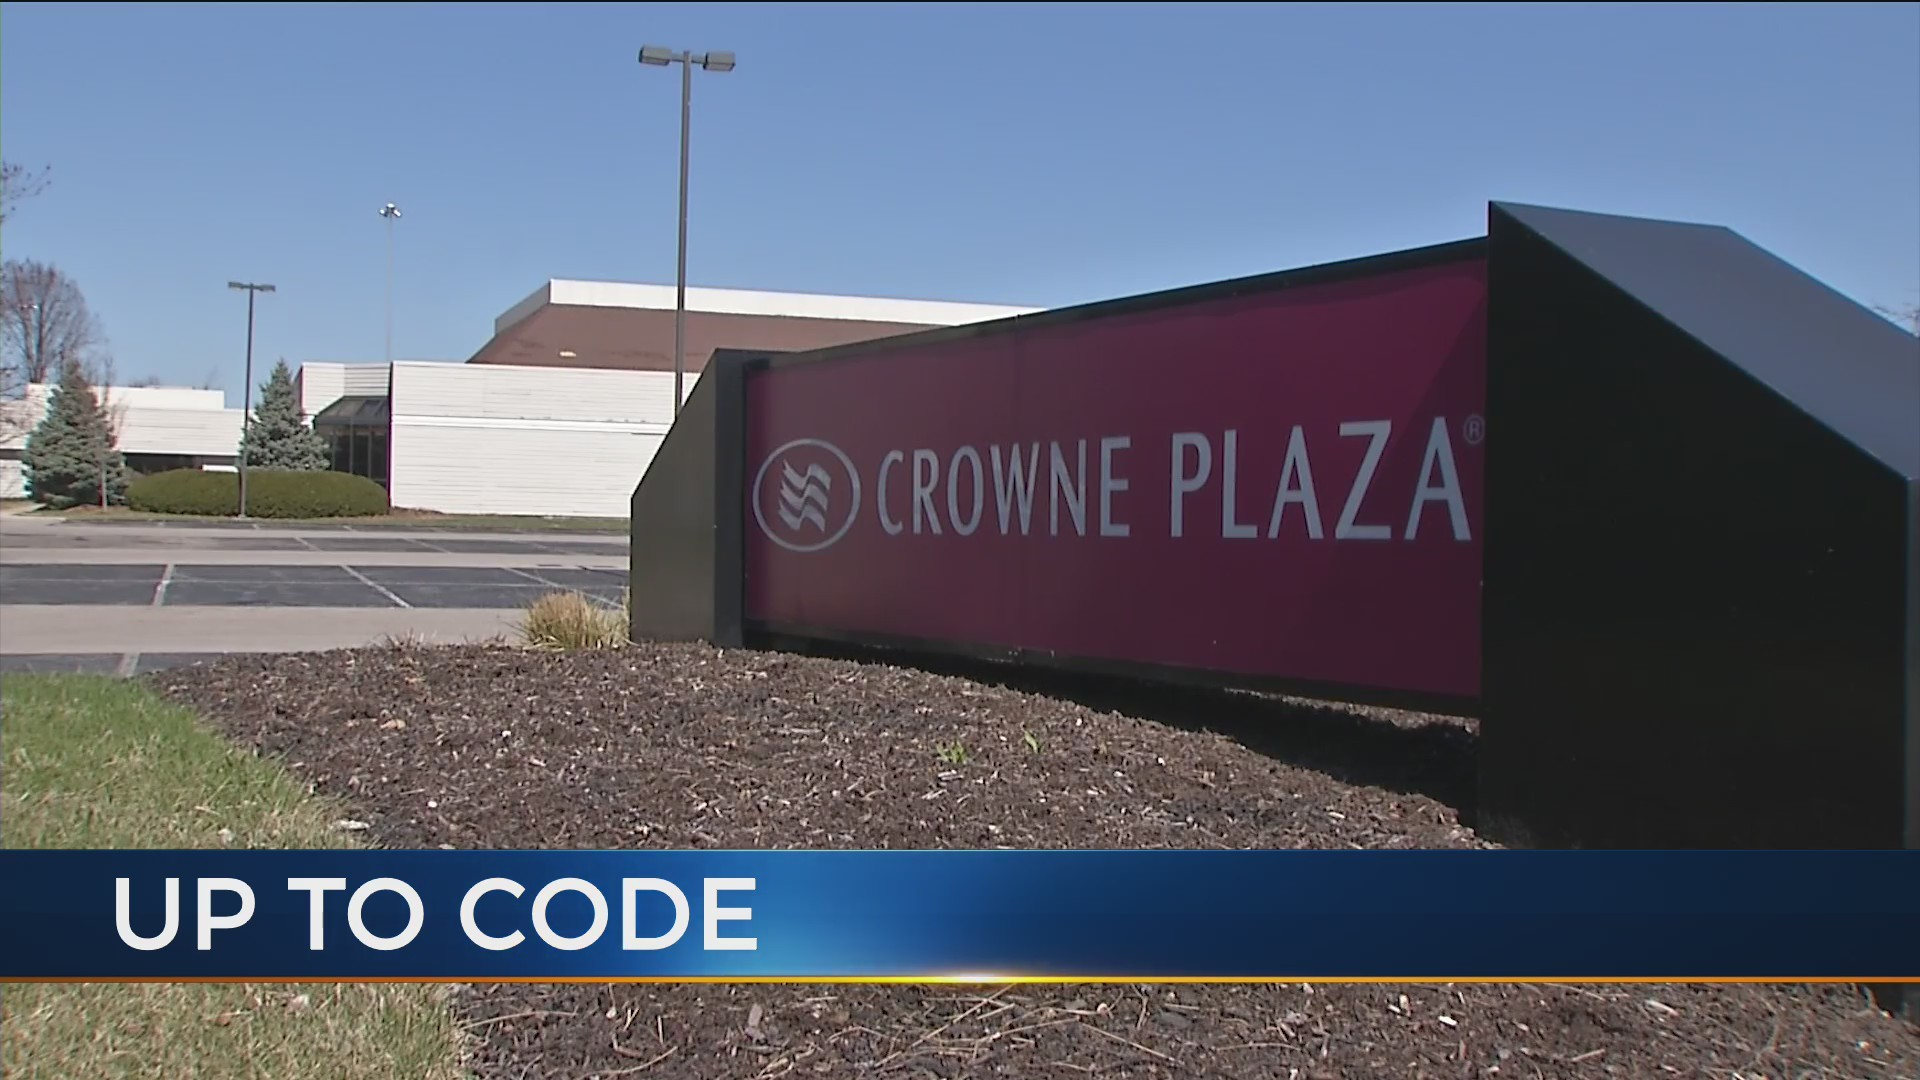 Crowne Plaza hotel kitchen cited for critical food safety violations